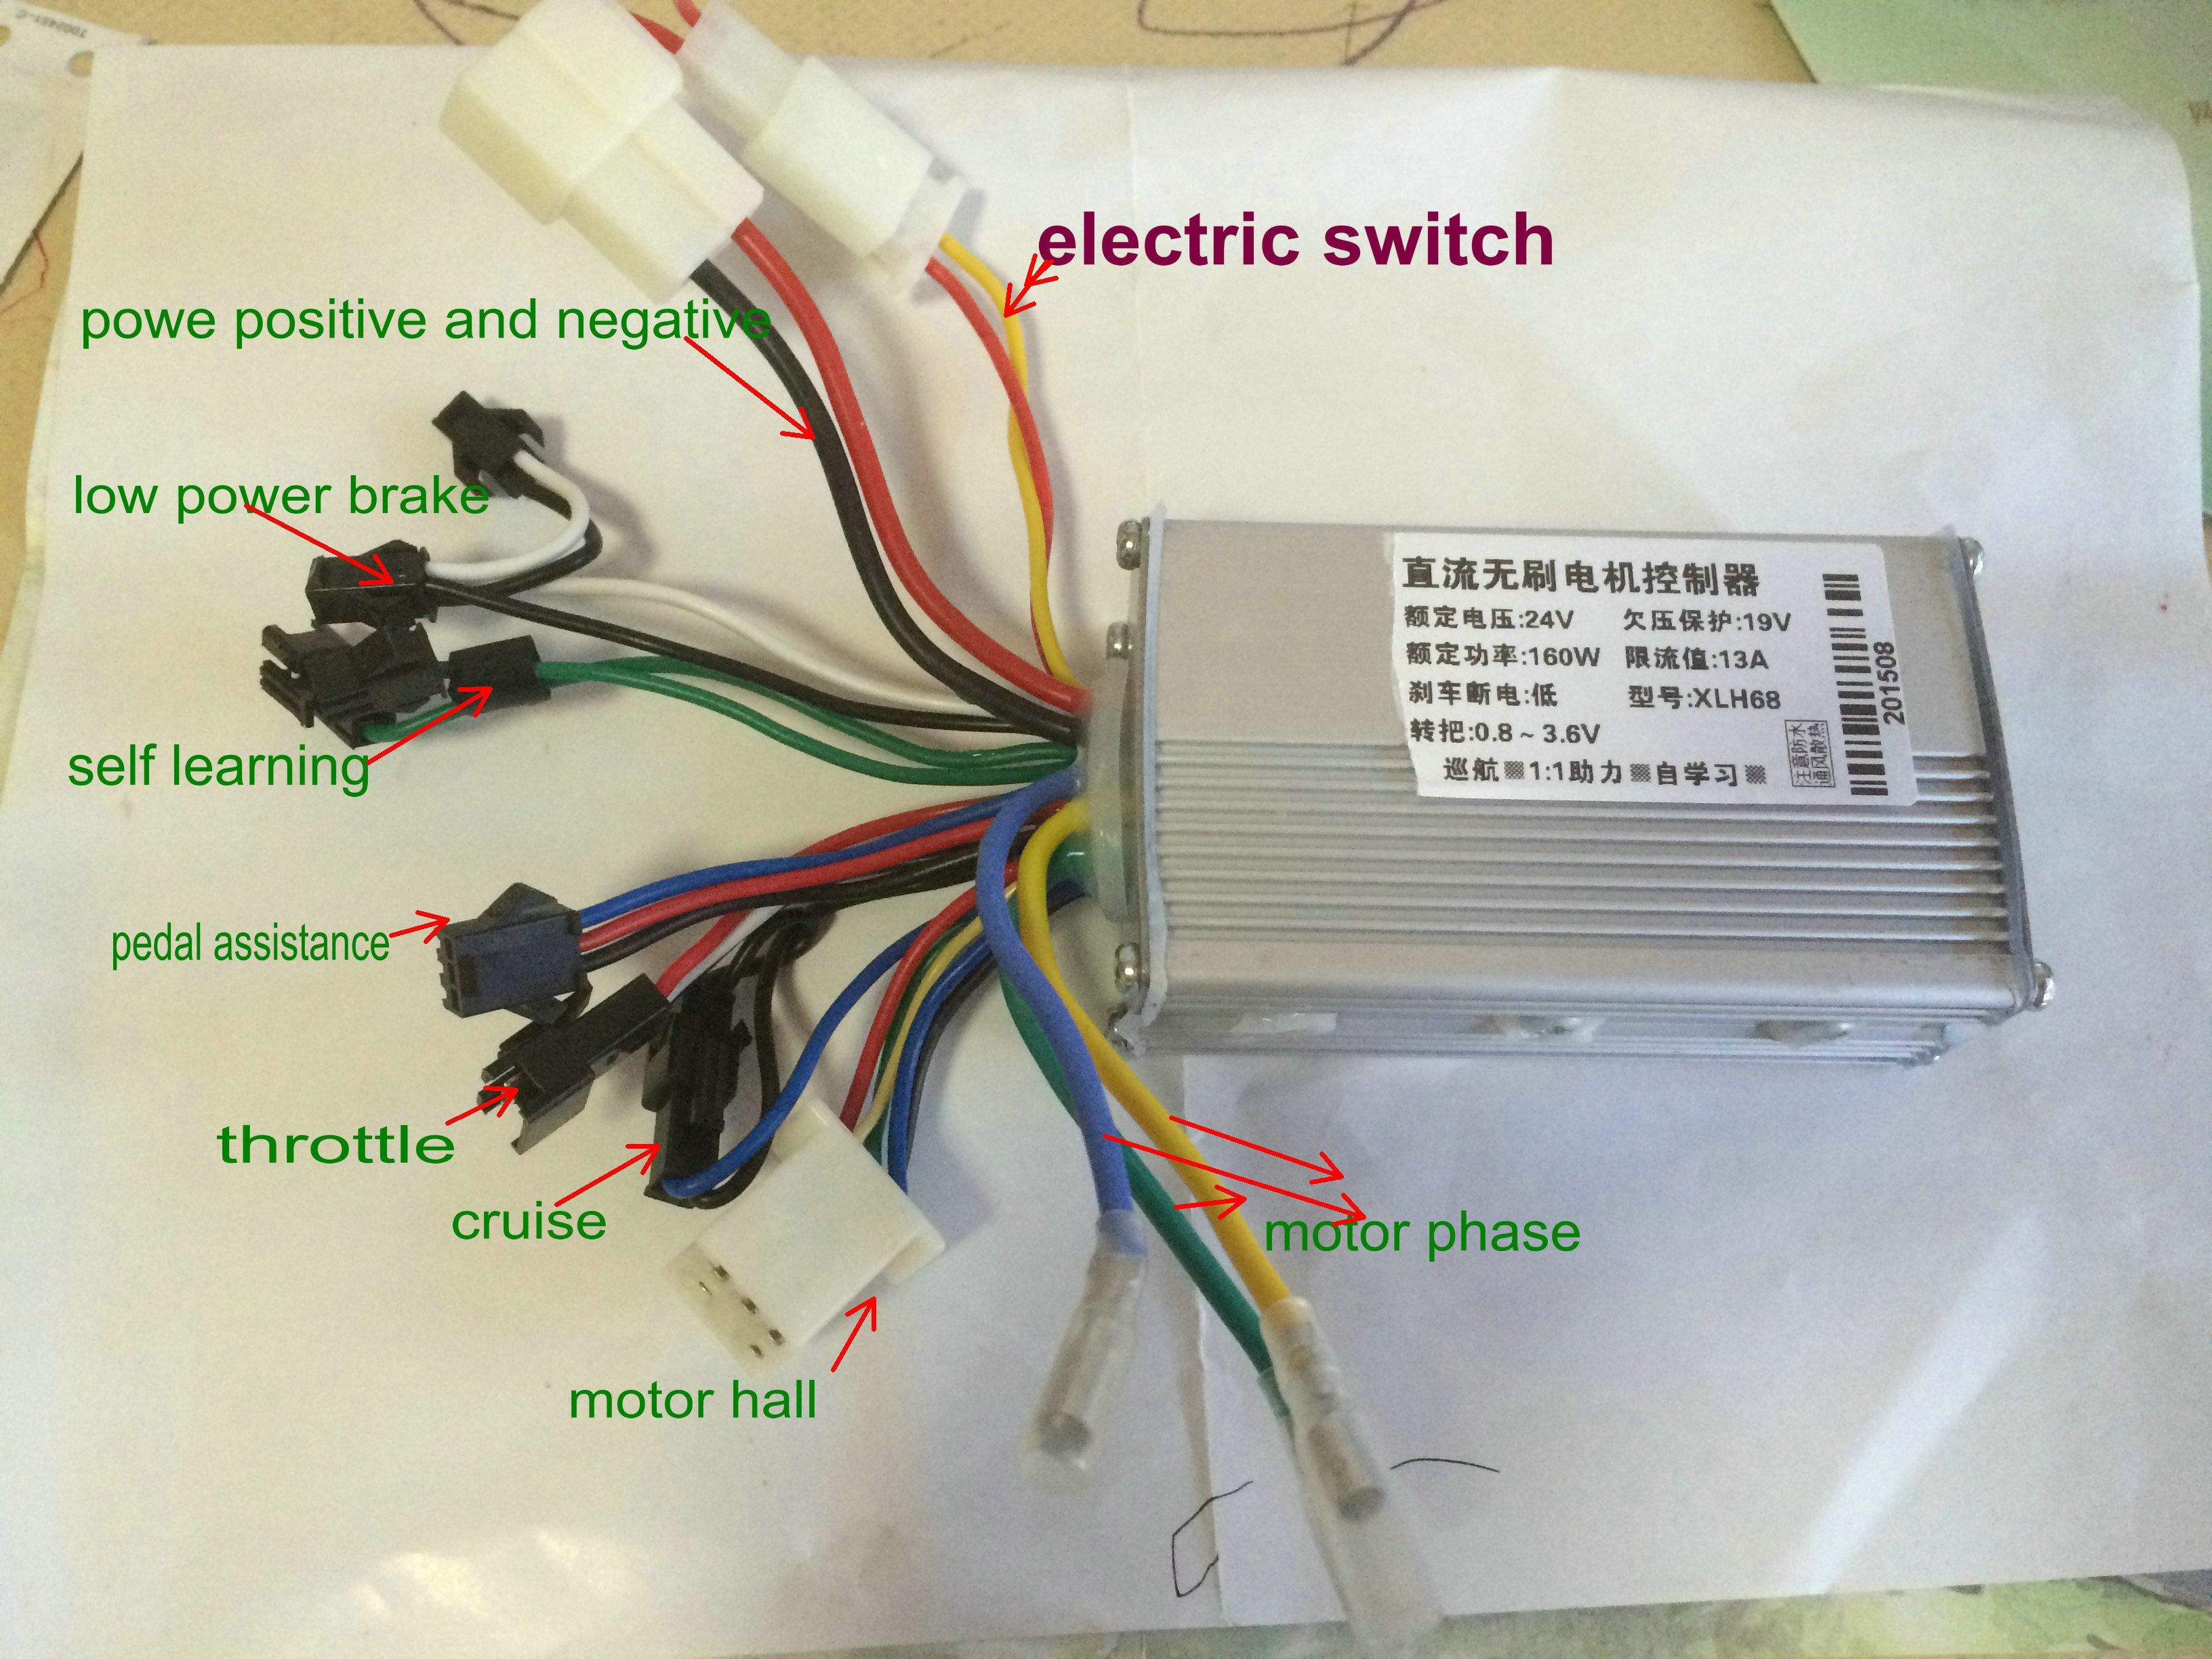 bldc motor controller wiring diagram Collection-2018 24v36v48v 250w350w Bldc Motor Speed Controller 6 Mosfet Dual Mode Electric Bike Mtb Tricycle Scooter Moped Conversion Part From Phoebeqxvehiclesport 14-n